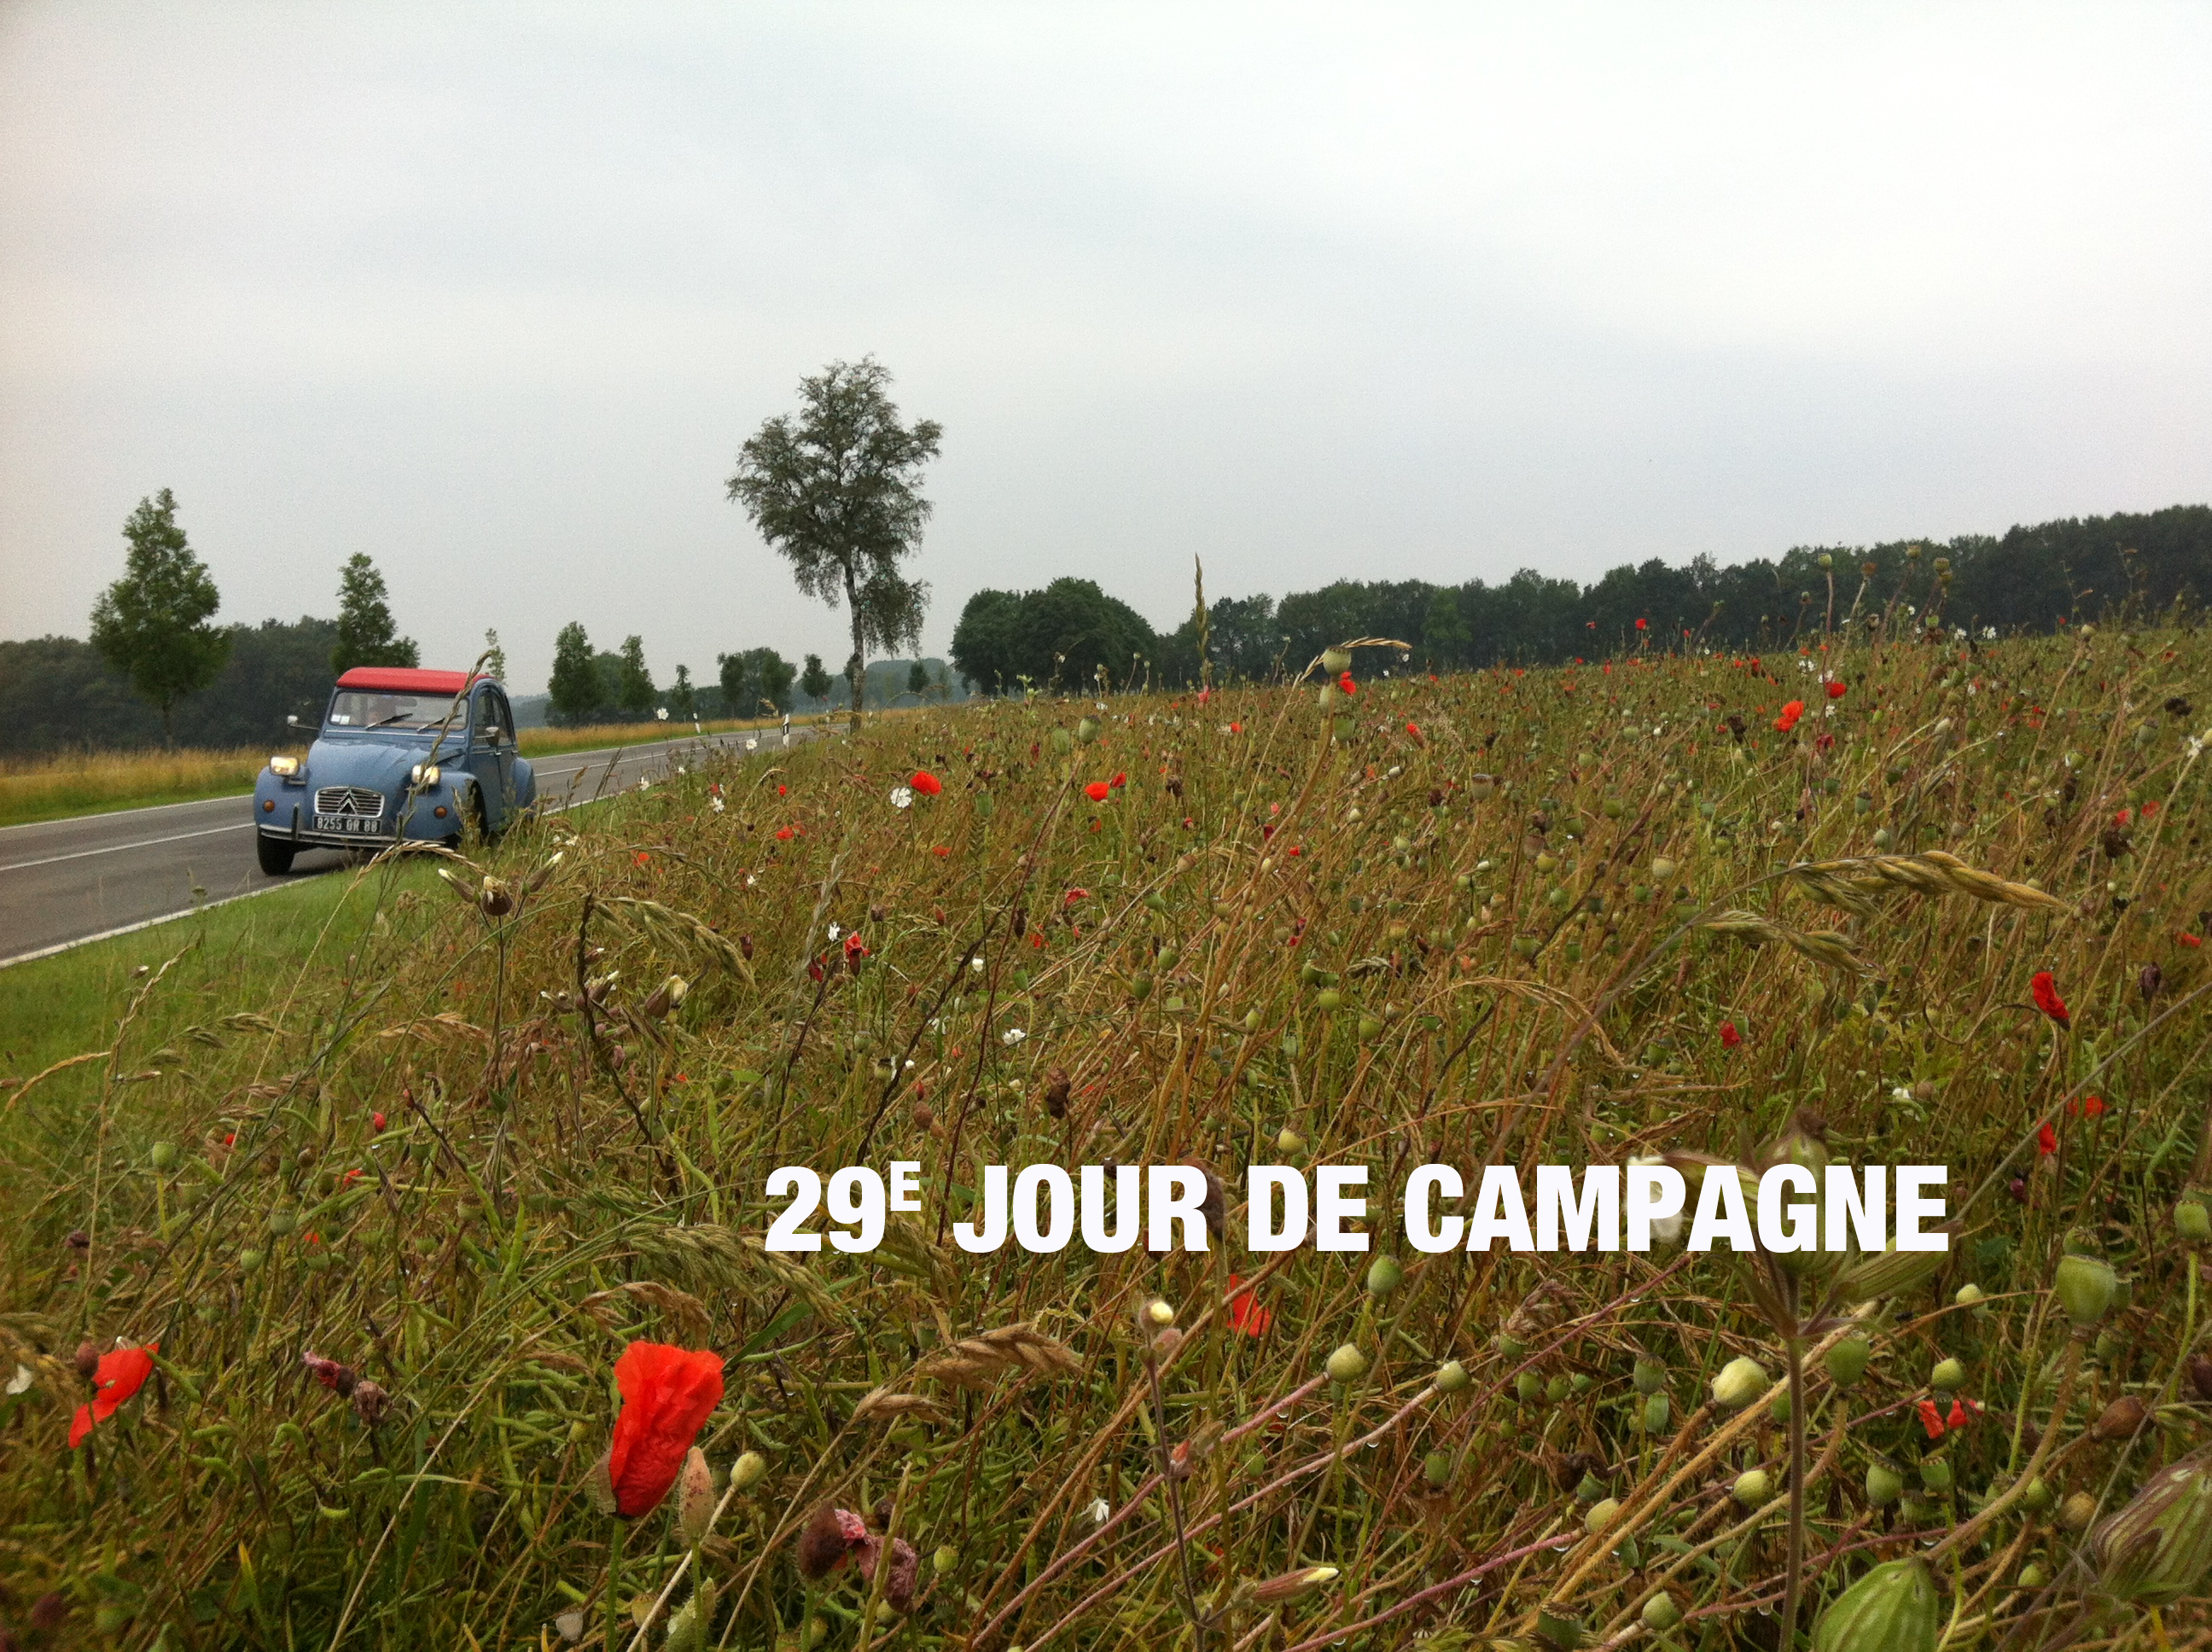 Campagne29-Mecklembourg-Poméranie-Occidentale